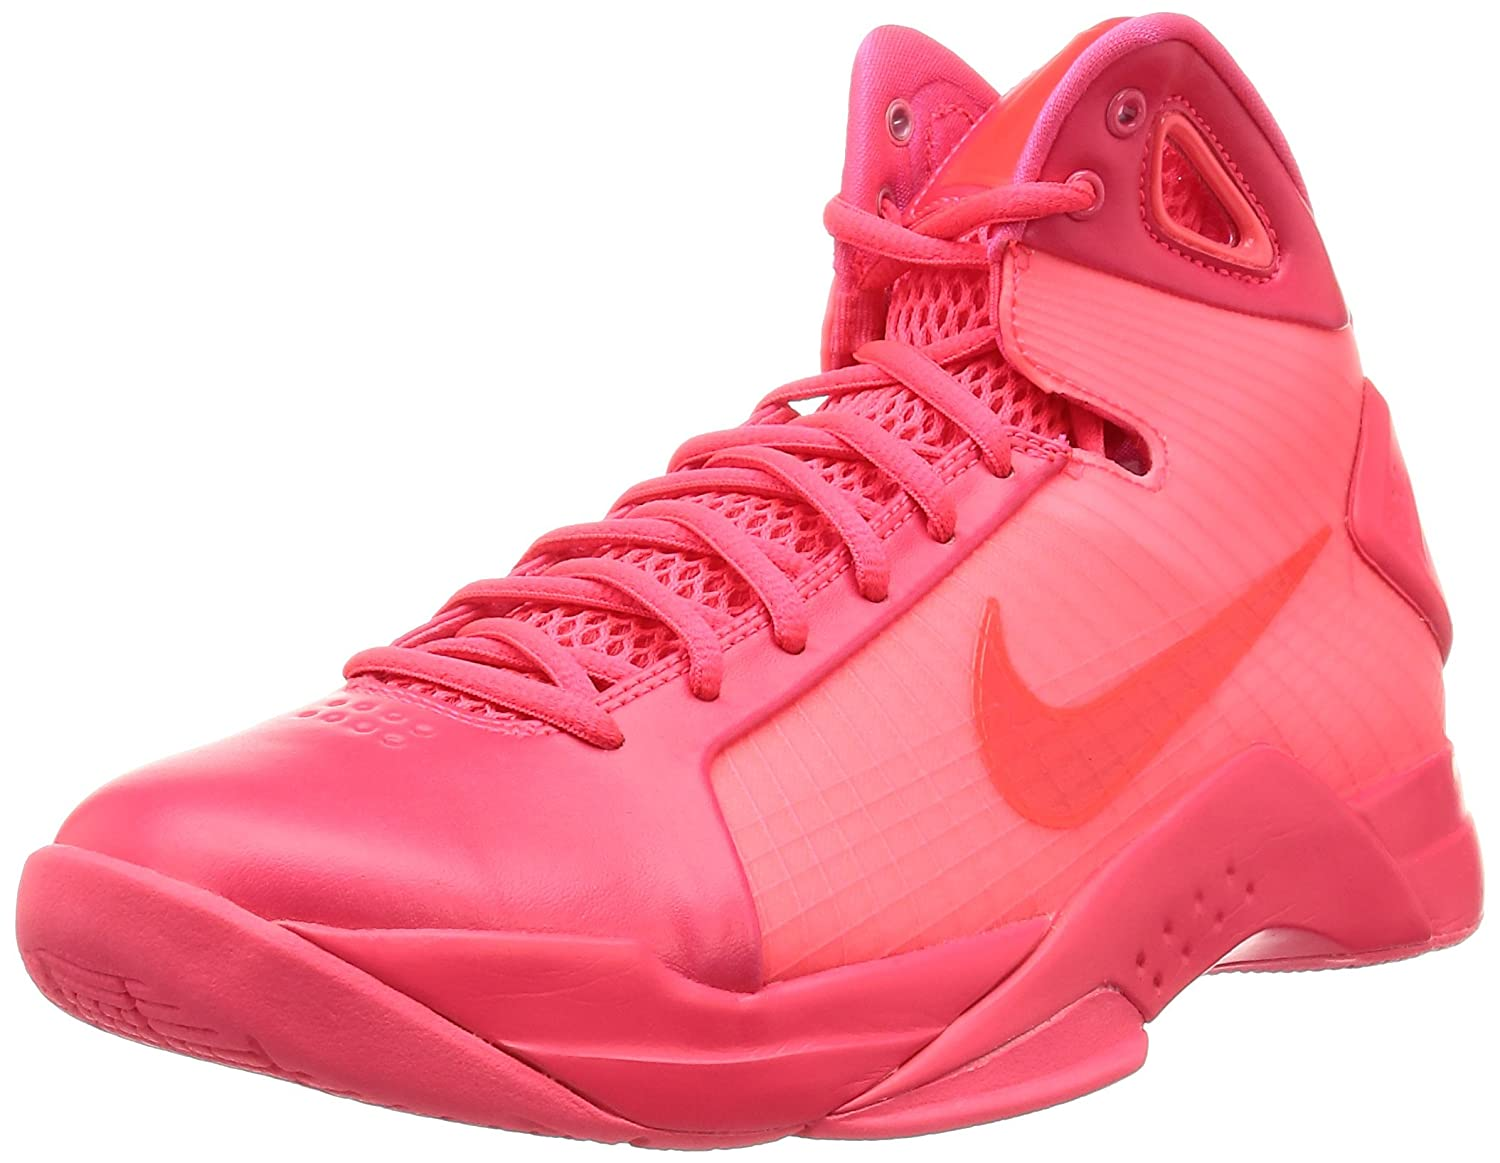 NIKE Men's Hyperdunk '08 Basketball Shoe B01HHWY13A 9 D(M) US|Solar Red/Solar Red Solar Red